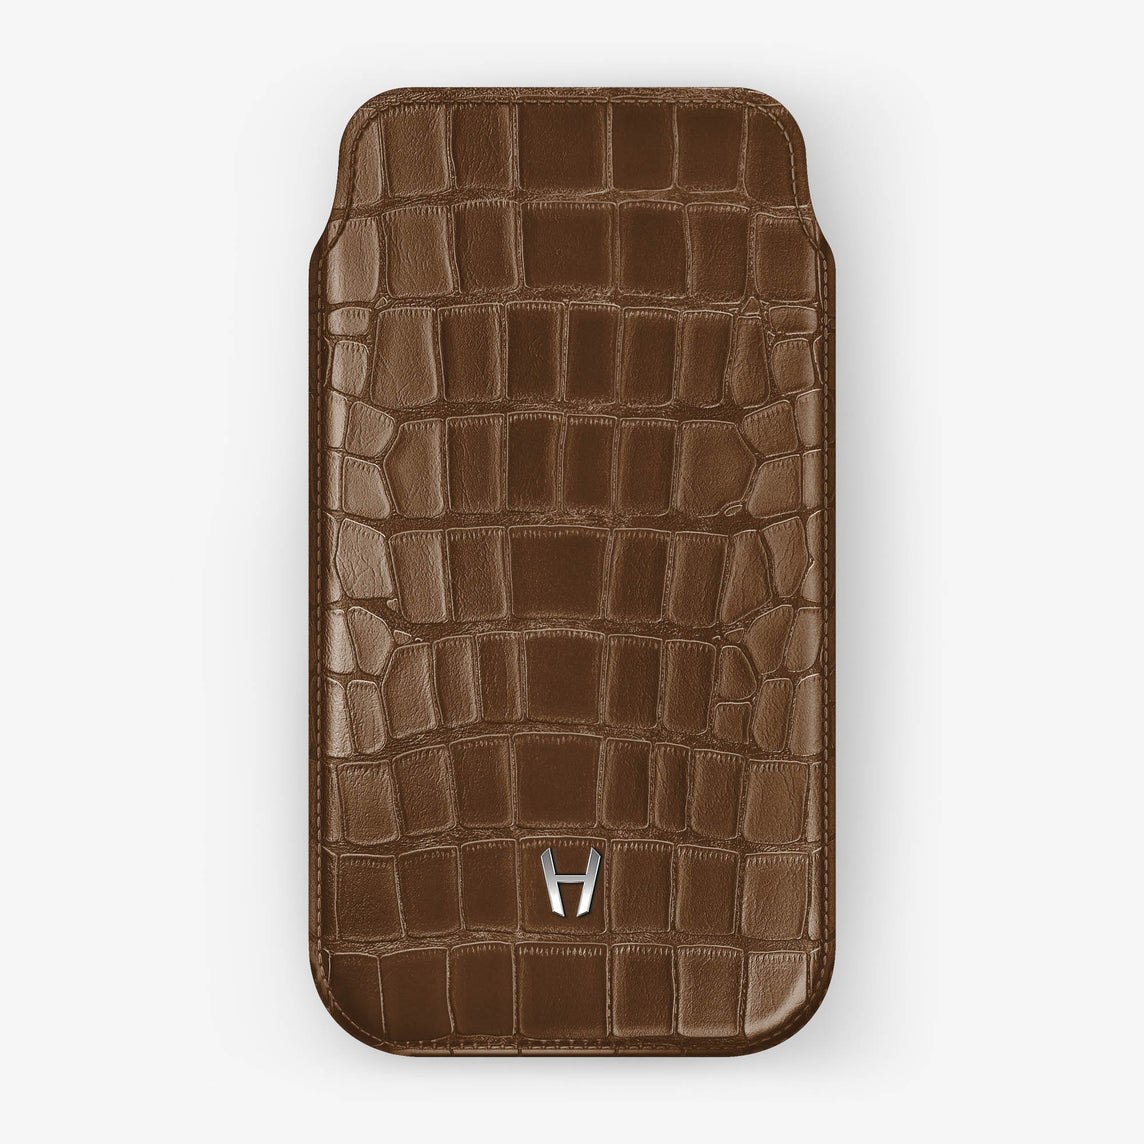 Alligator [iPhone Sleeve Case] [model:iphone-xr-case] [colour:brown] [finishing:stainless-steel]